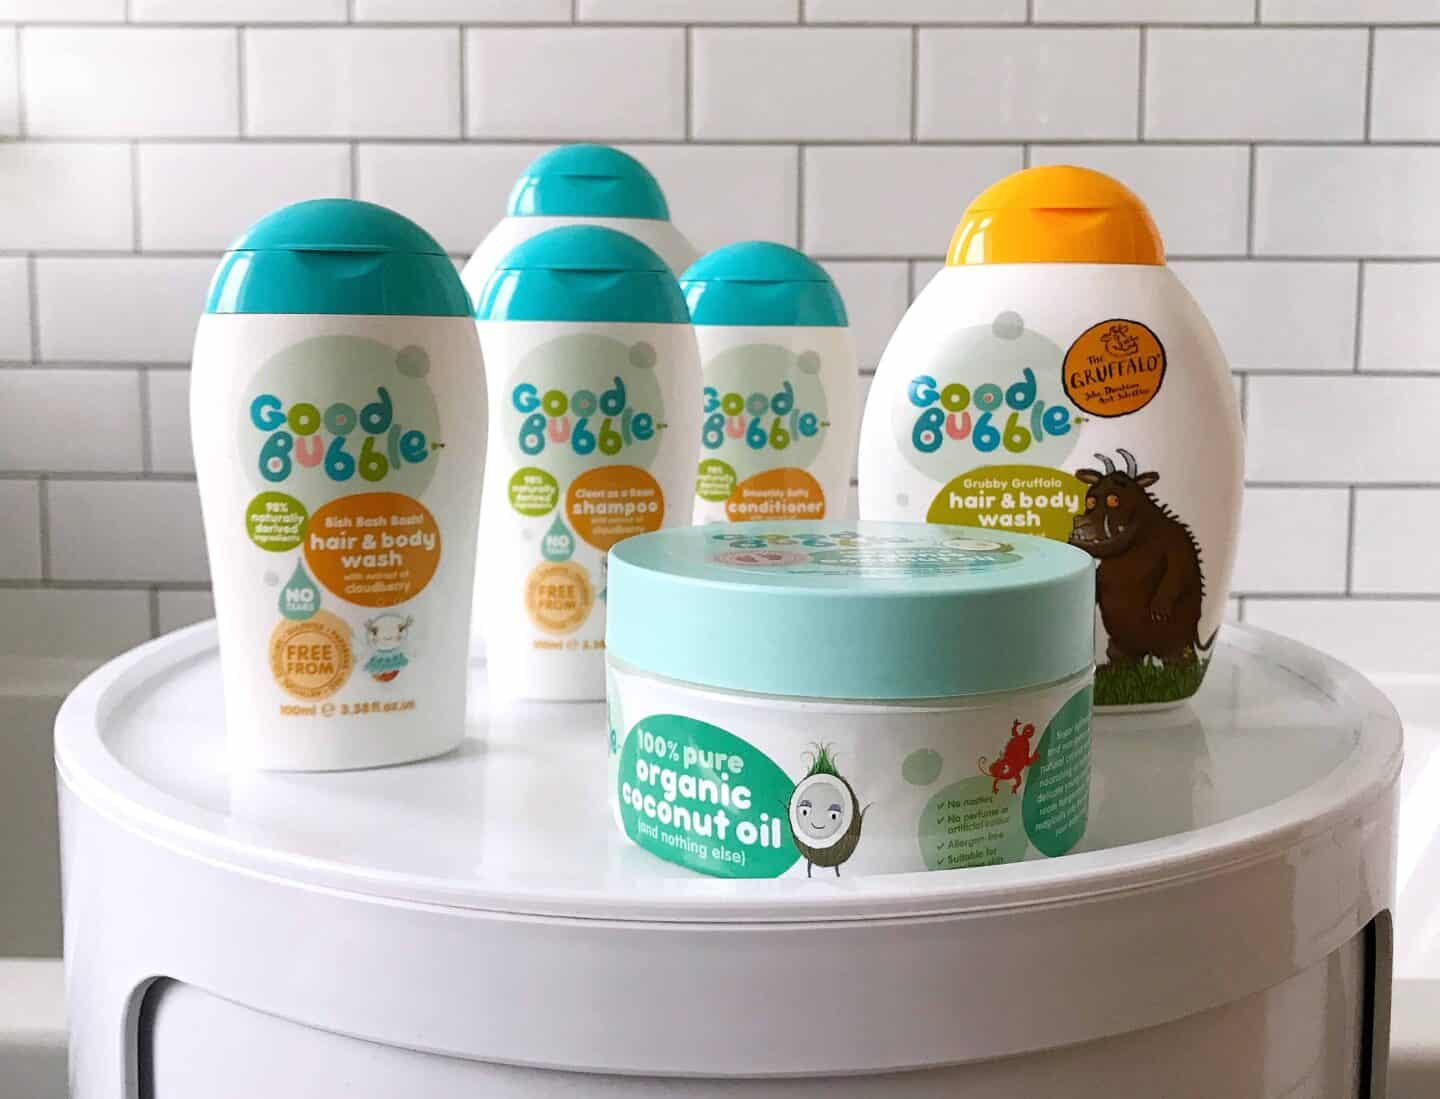 Good Bubble Kids Clean Skincare & Haircare Review